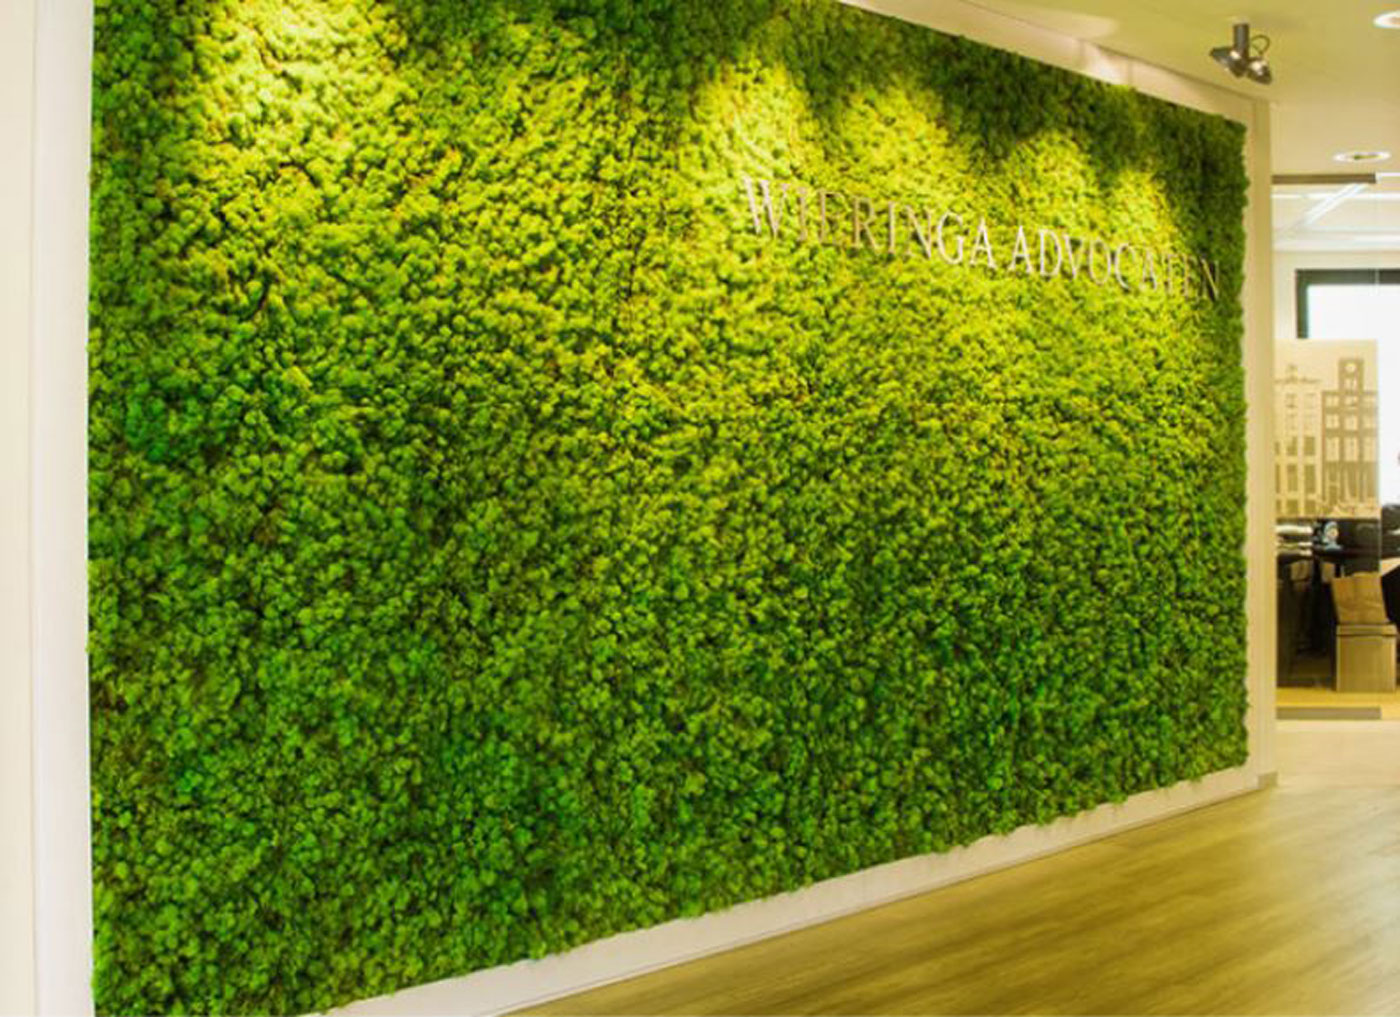 Moss Walls - Real Preserved Moss Green Walls | Office ...